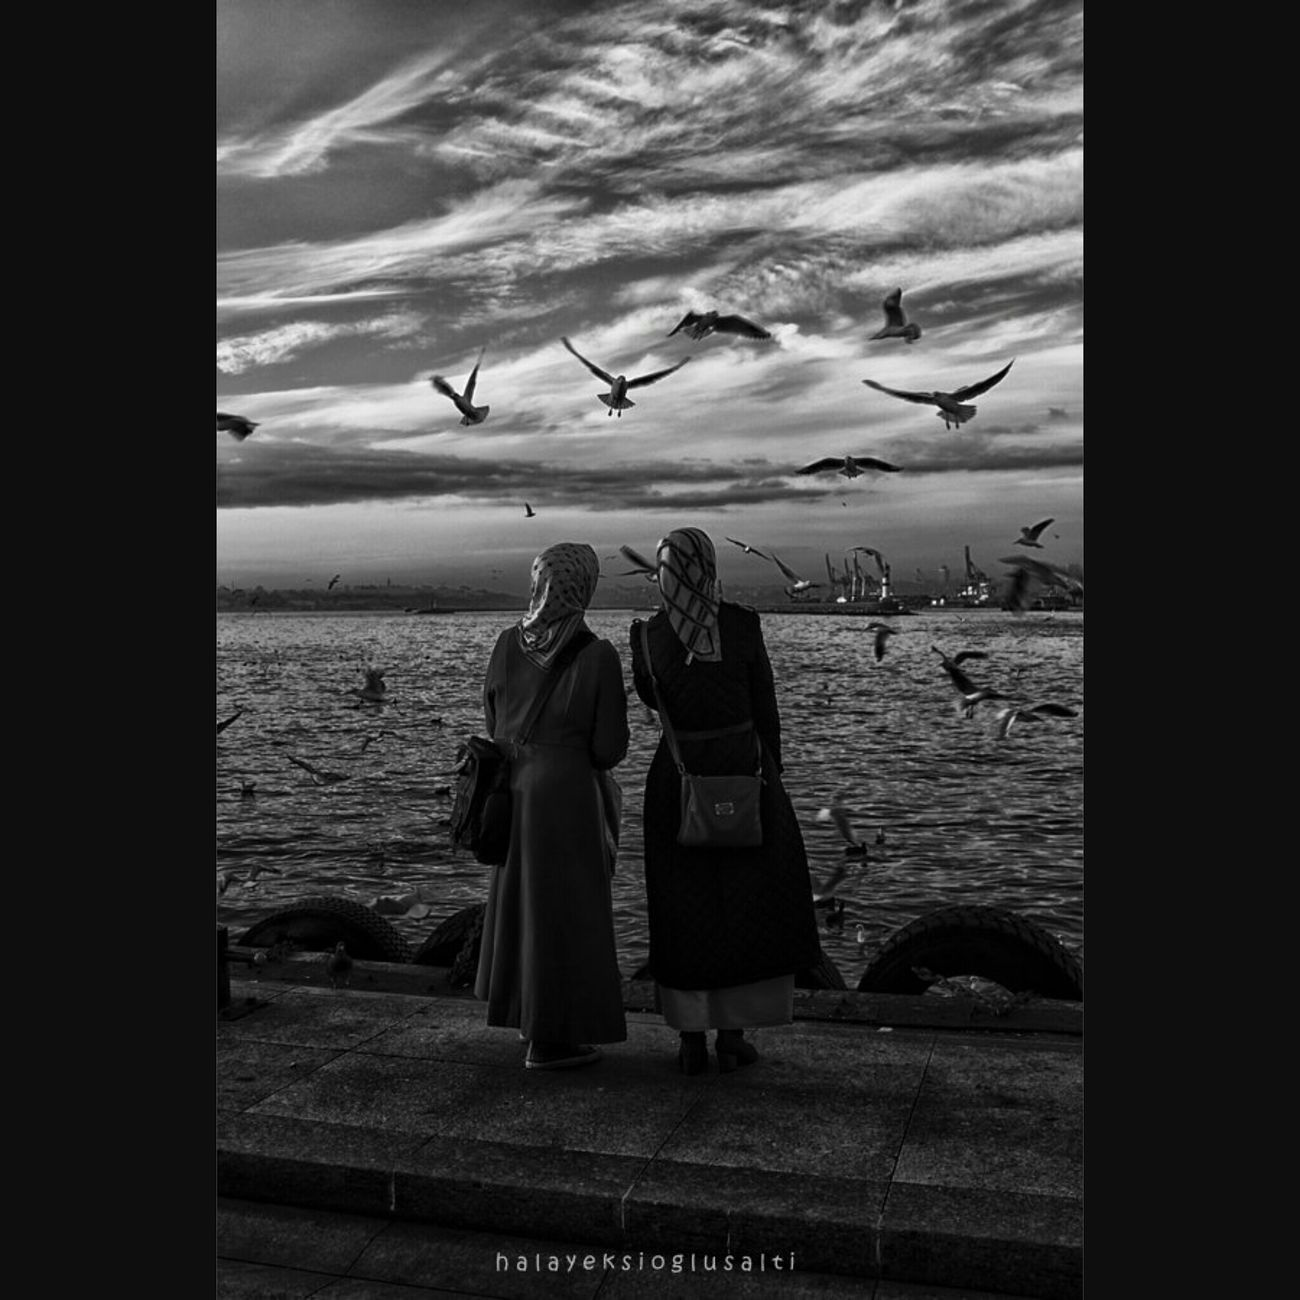 Turkinstagram Turkishfollowers EyeEm Best Edits Turkeyphotooftheday EyeEm Best Shots EyeEm Masterclass Eyeem Monochrome Monochrome_life Monochrome Monday Monochrome